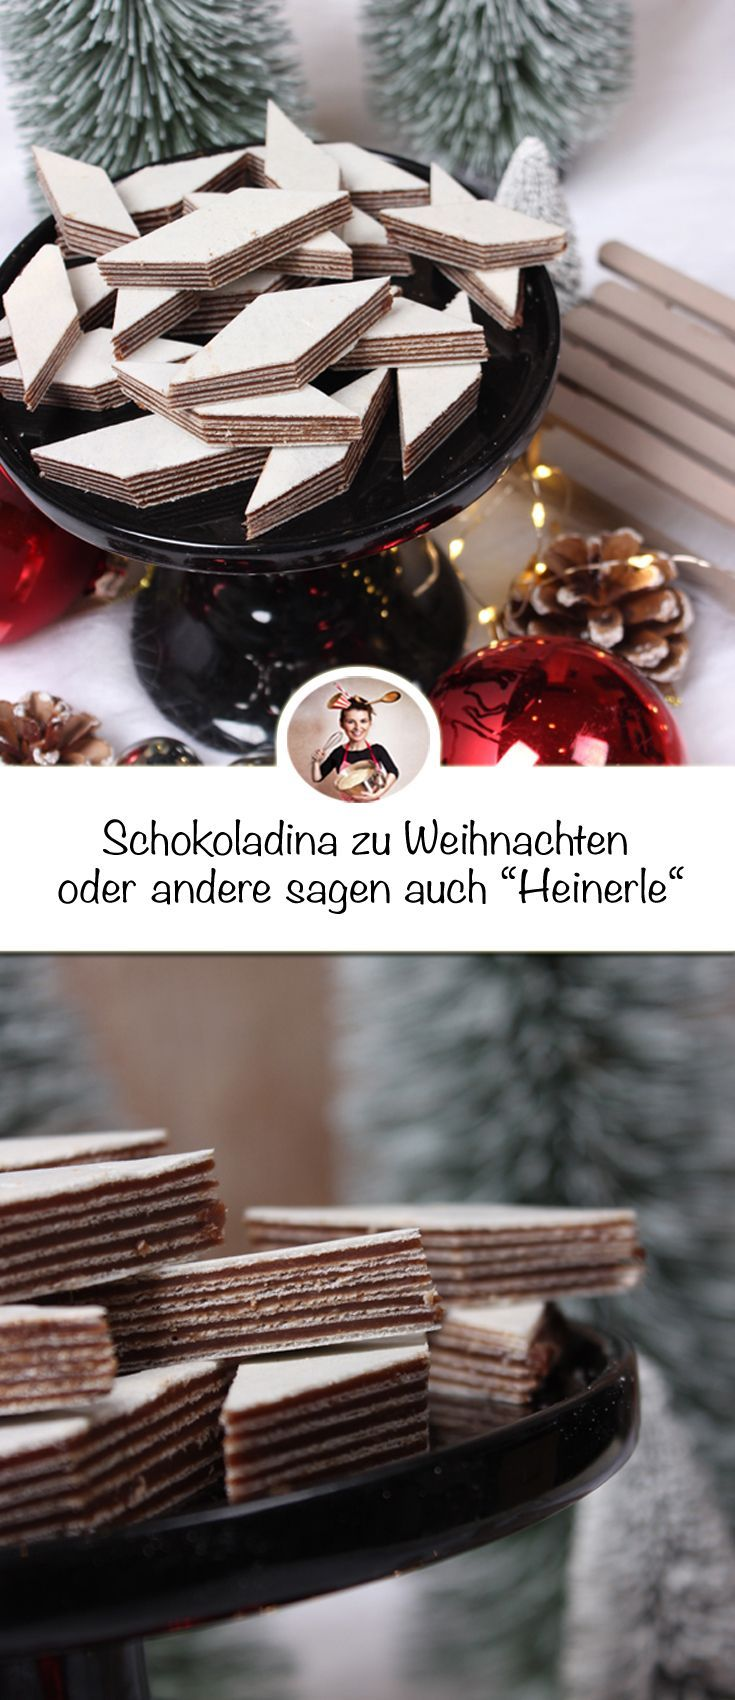 """Photo of Chocolate for Christmas or others say """"Heinerle"""" are allowed in the …"""